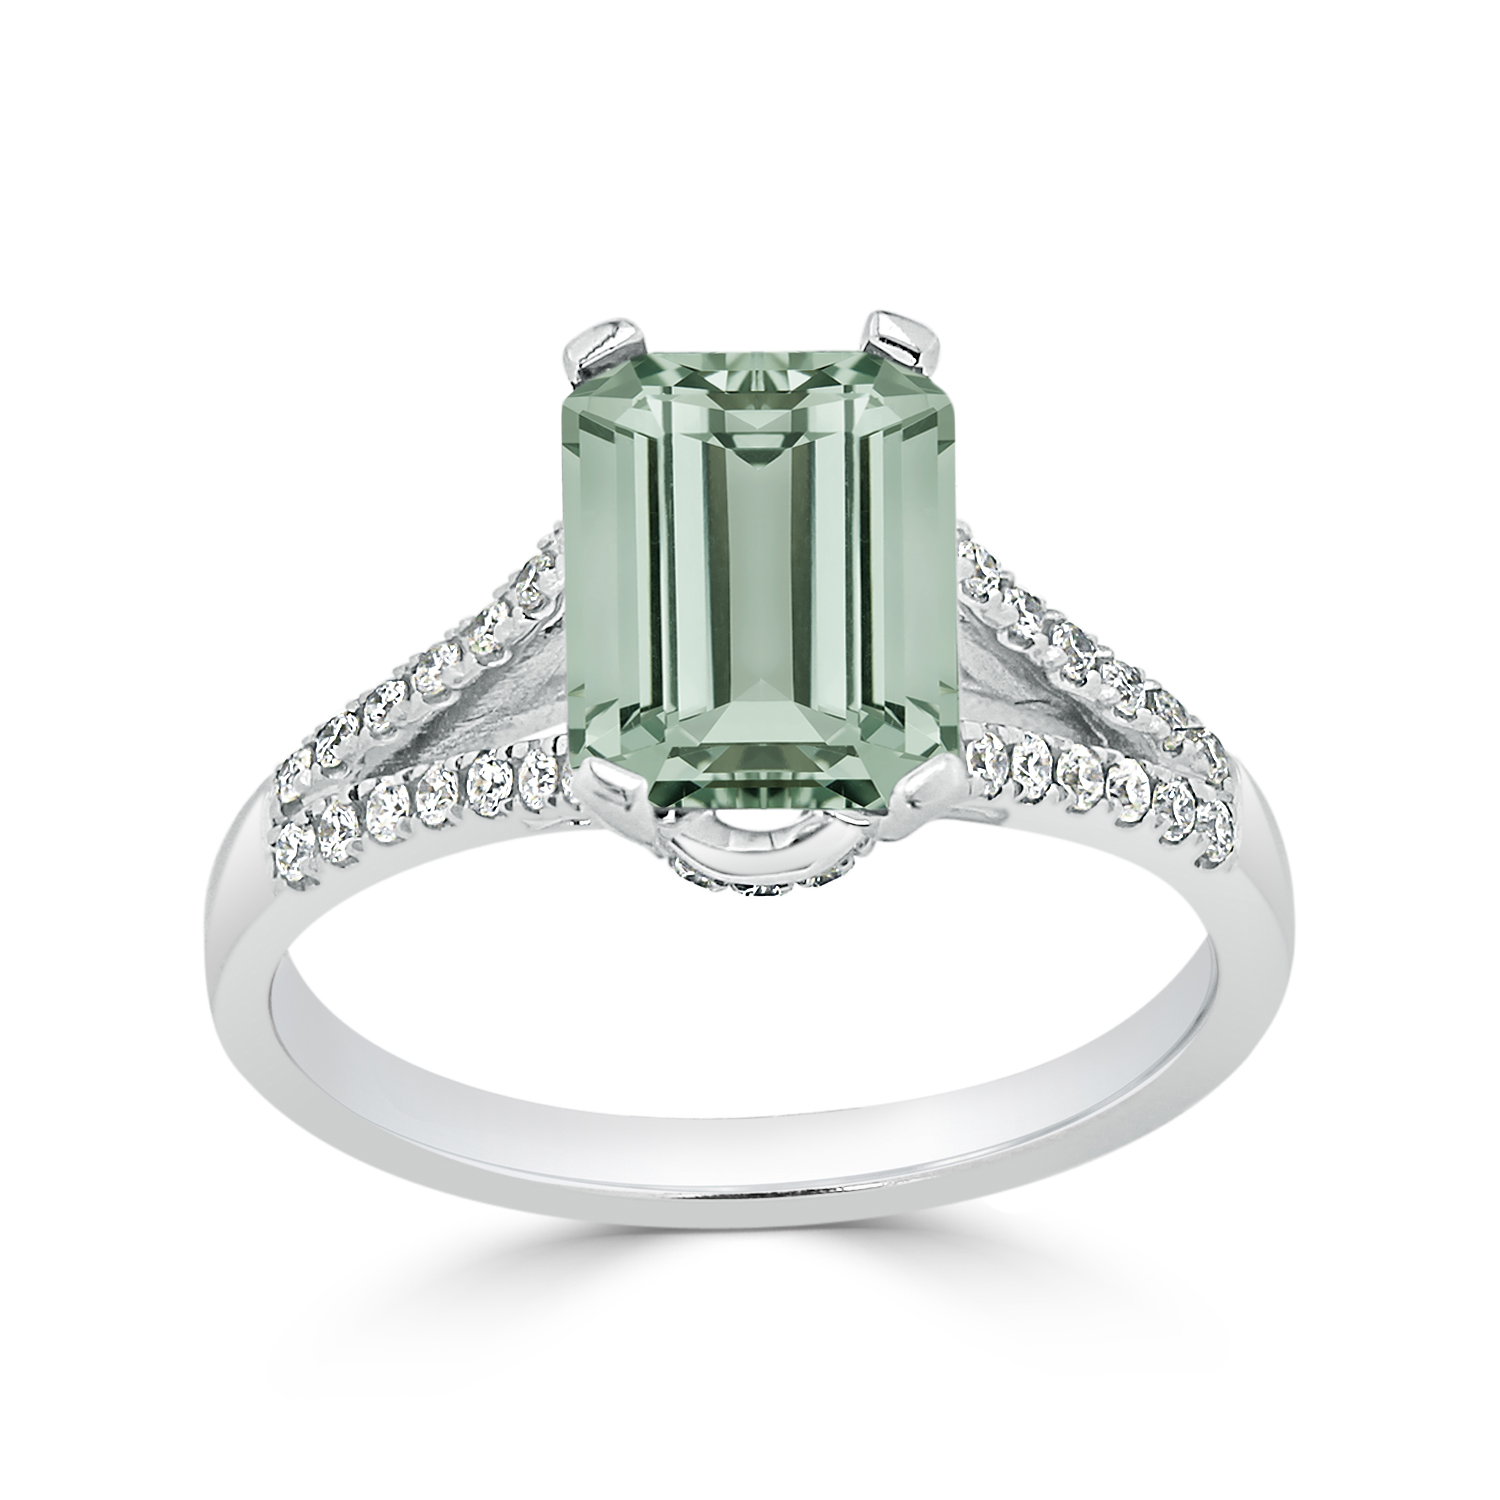 Halo Green Amethyst Diamond Ring in 14K White Gold with 1.50 carat Emerald Green Amethyst